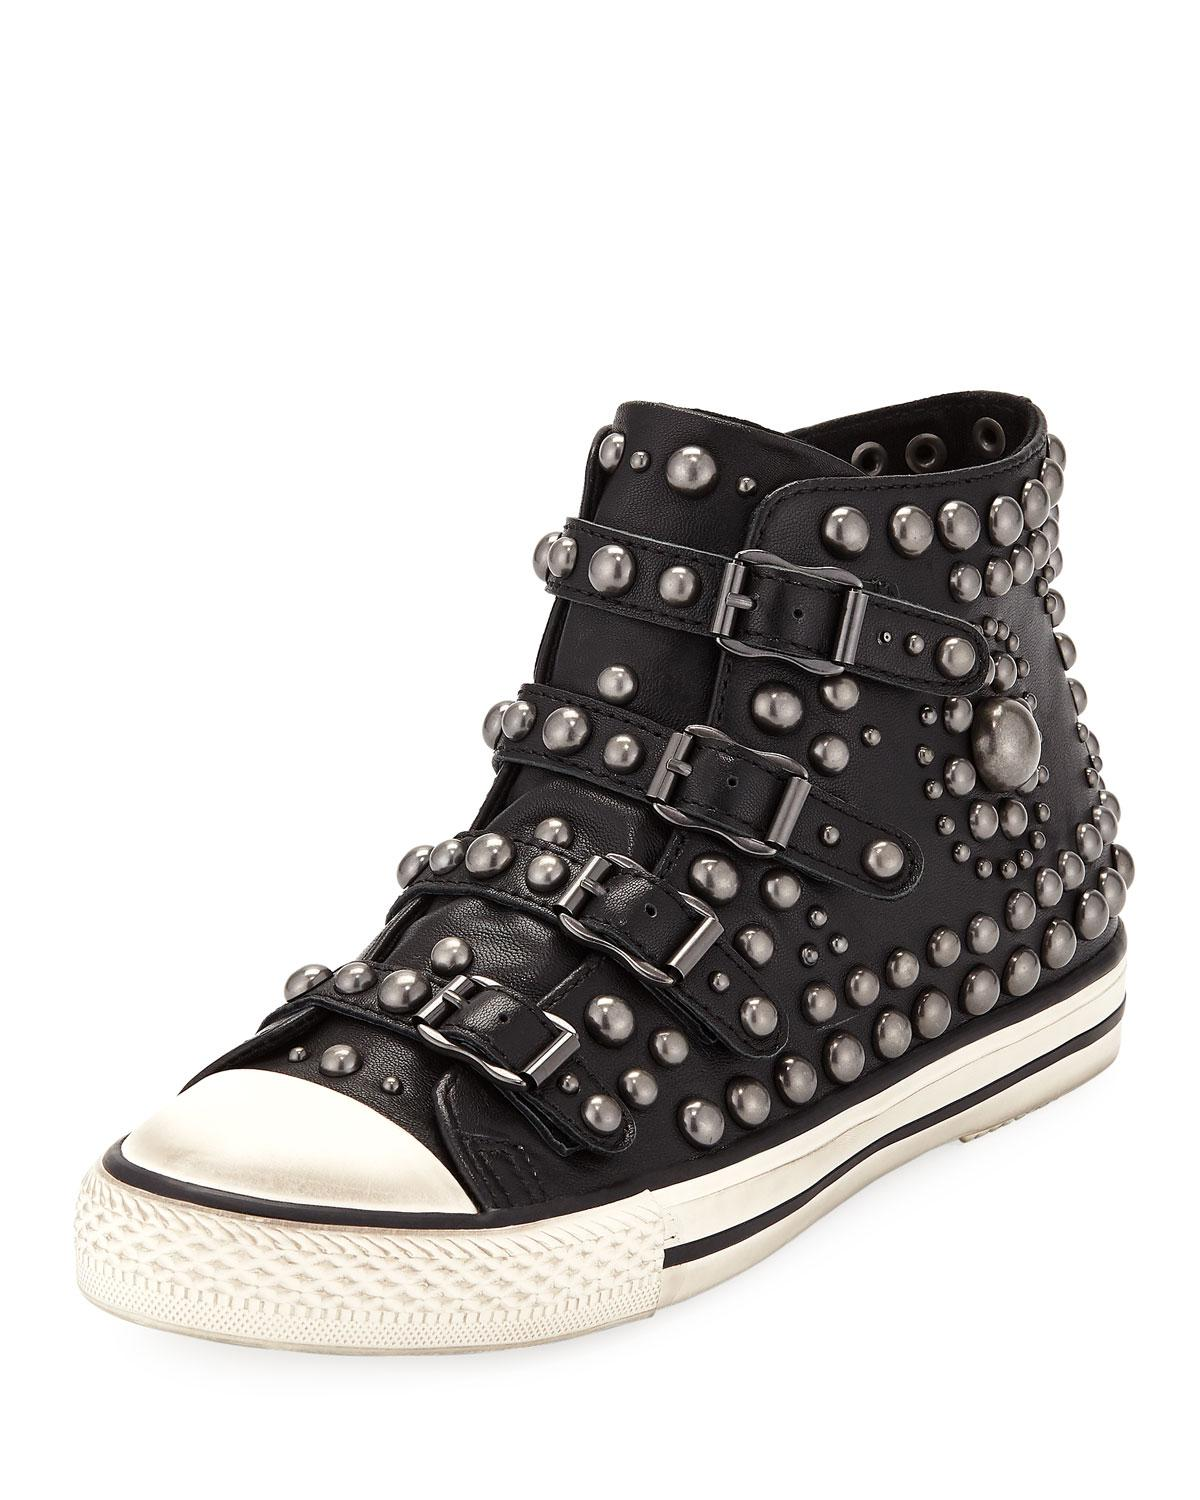 390b2c7c2df5b Lyst - Ash Vito Studded High-top Sneakers in Black